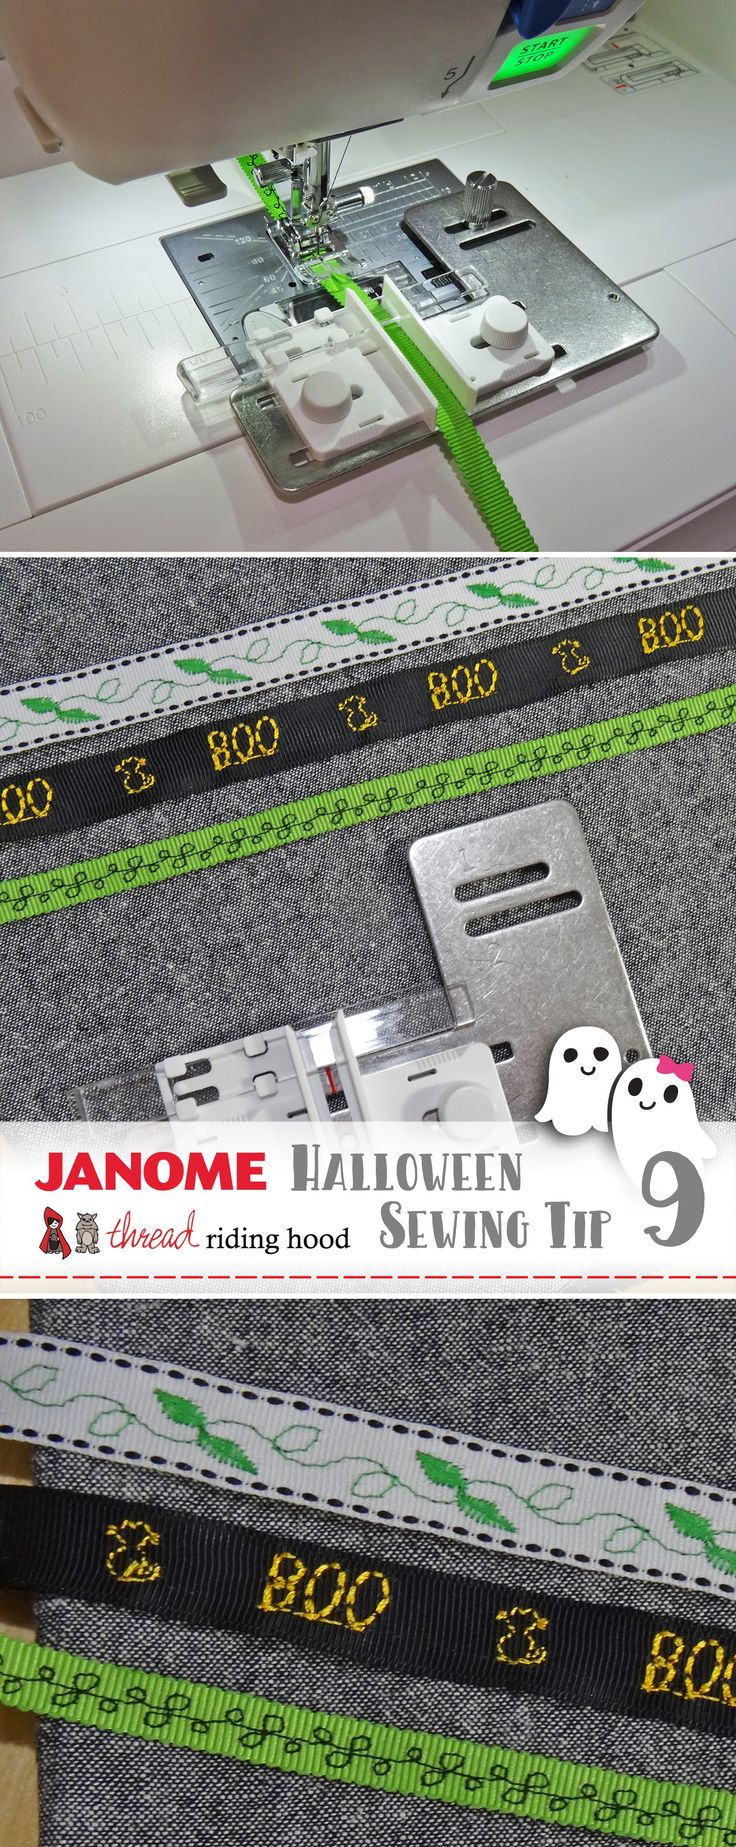 Halloween Costume Tip No.9: Embellish trims to make your costume unique! | Thread Riding Hood with@JanomeCanada